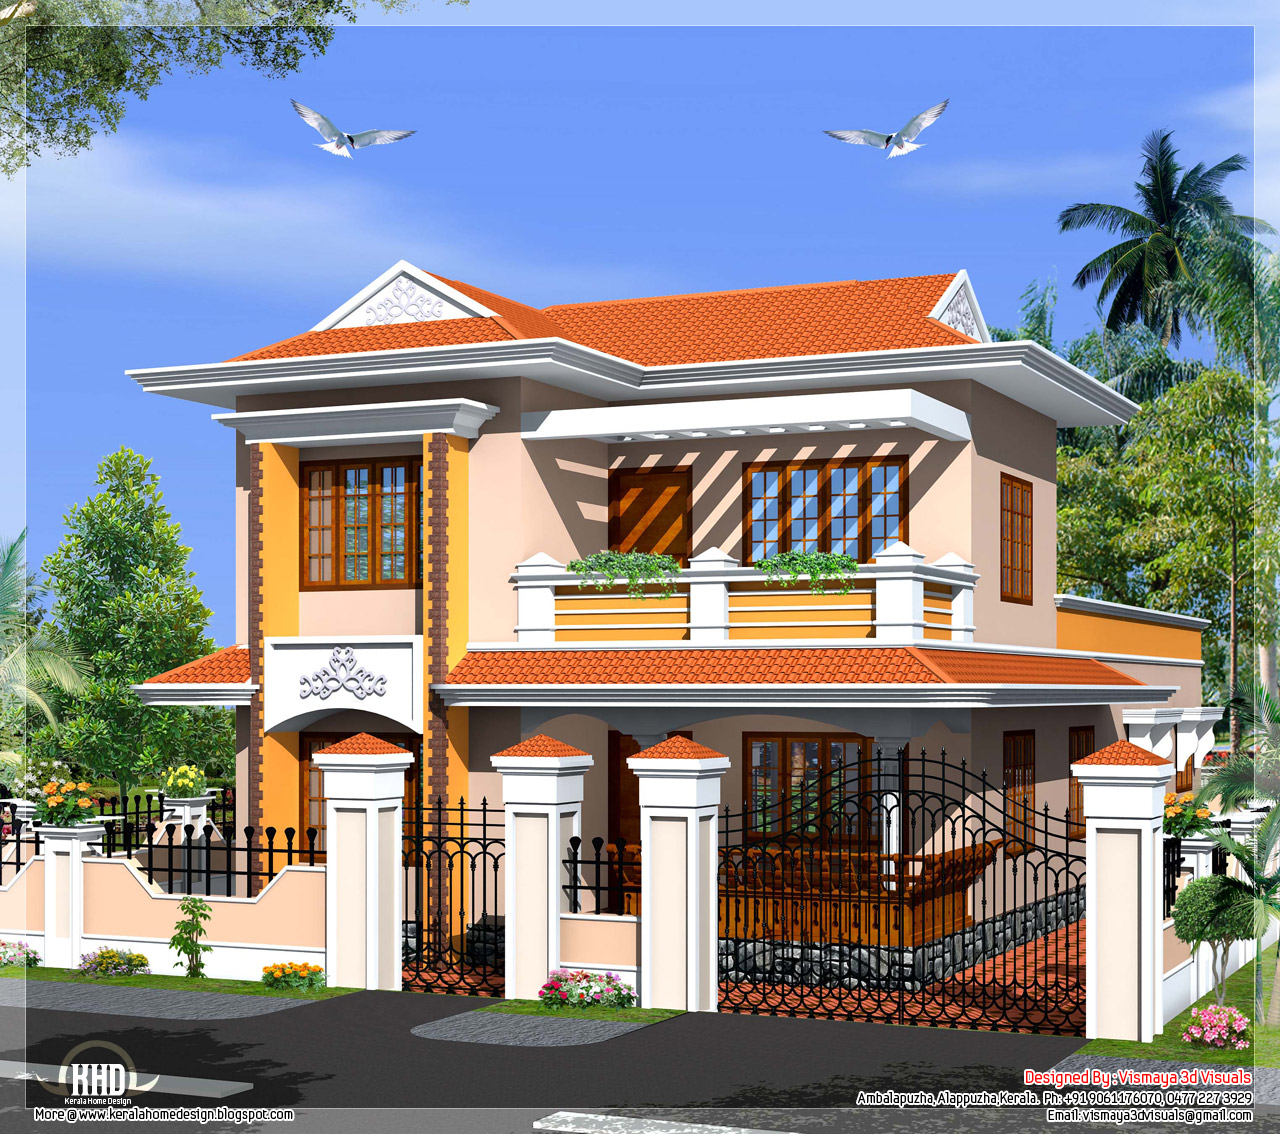 Kerala model villa in 2110 in square feet house design plans New home models and plans